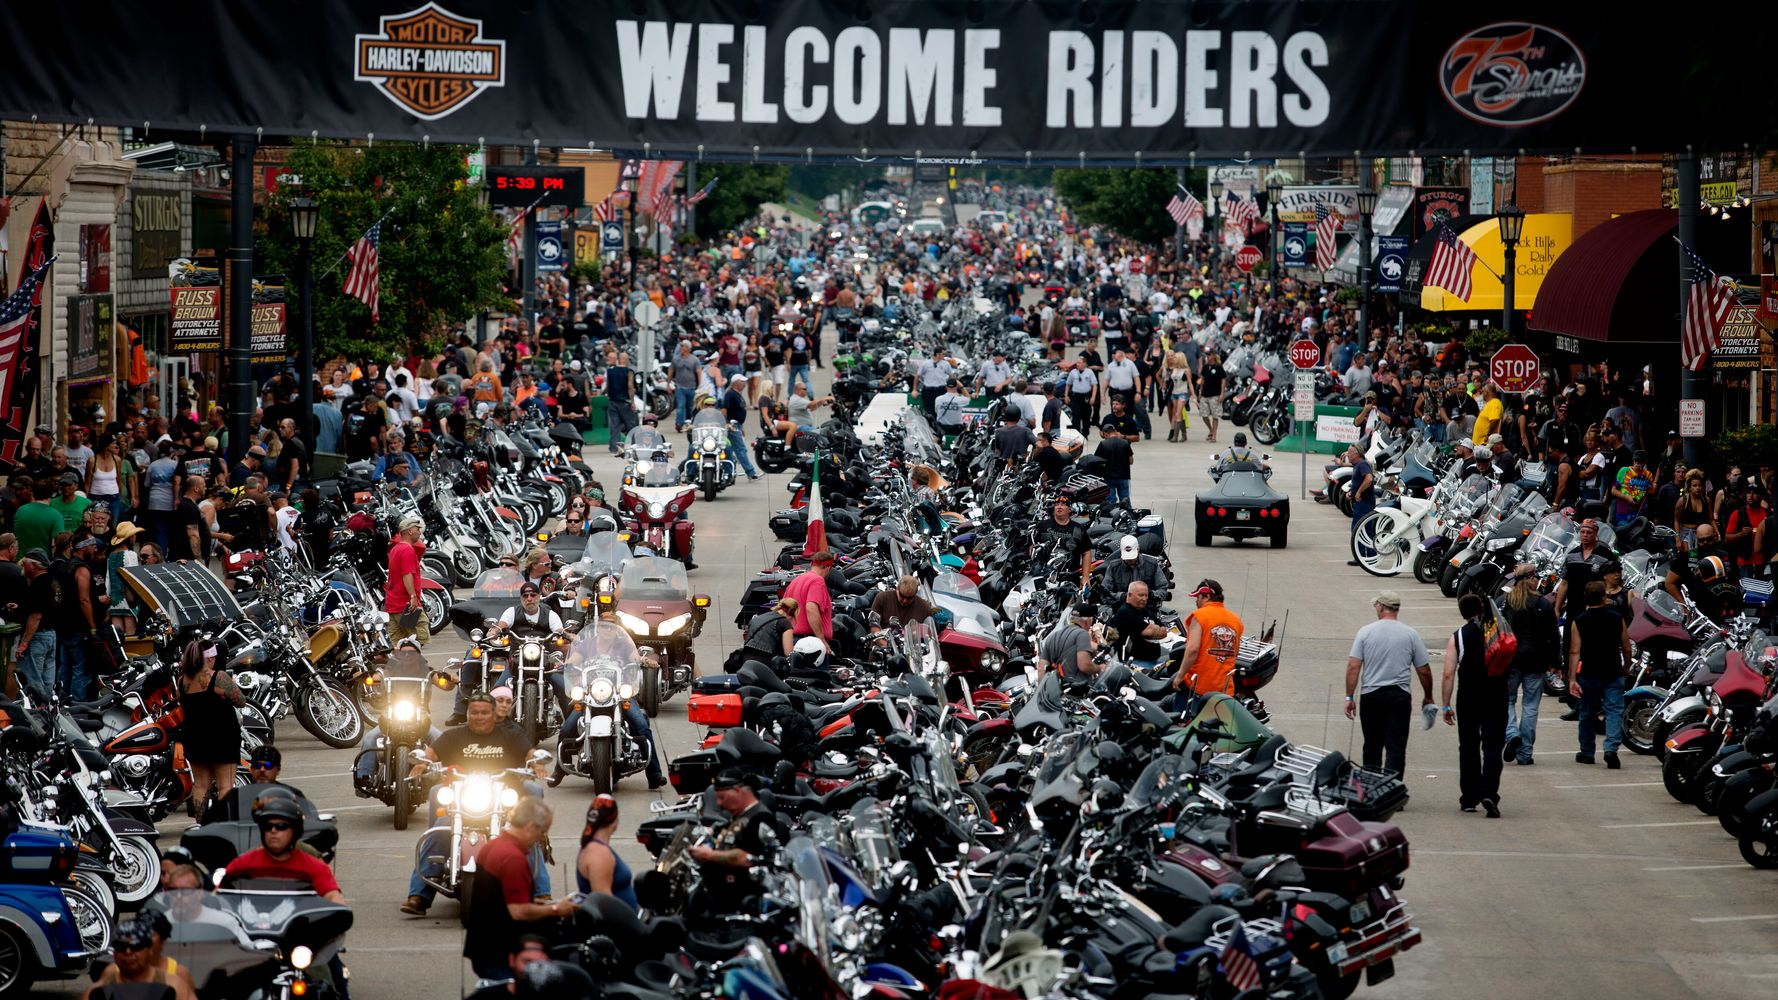 250,000 Bikers To Attend South Dakota's Sturgis Motorcycle Rally Despite COVID-19